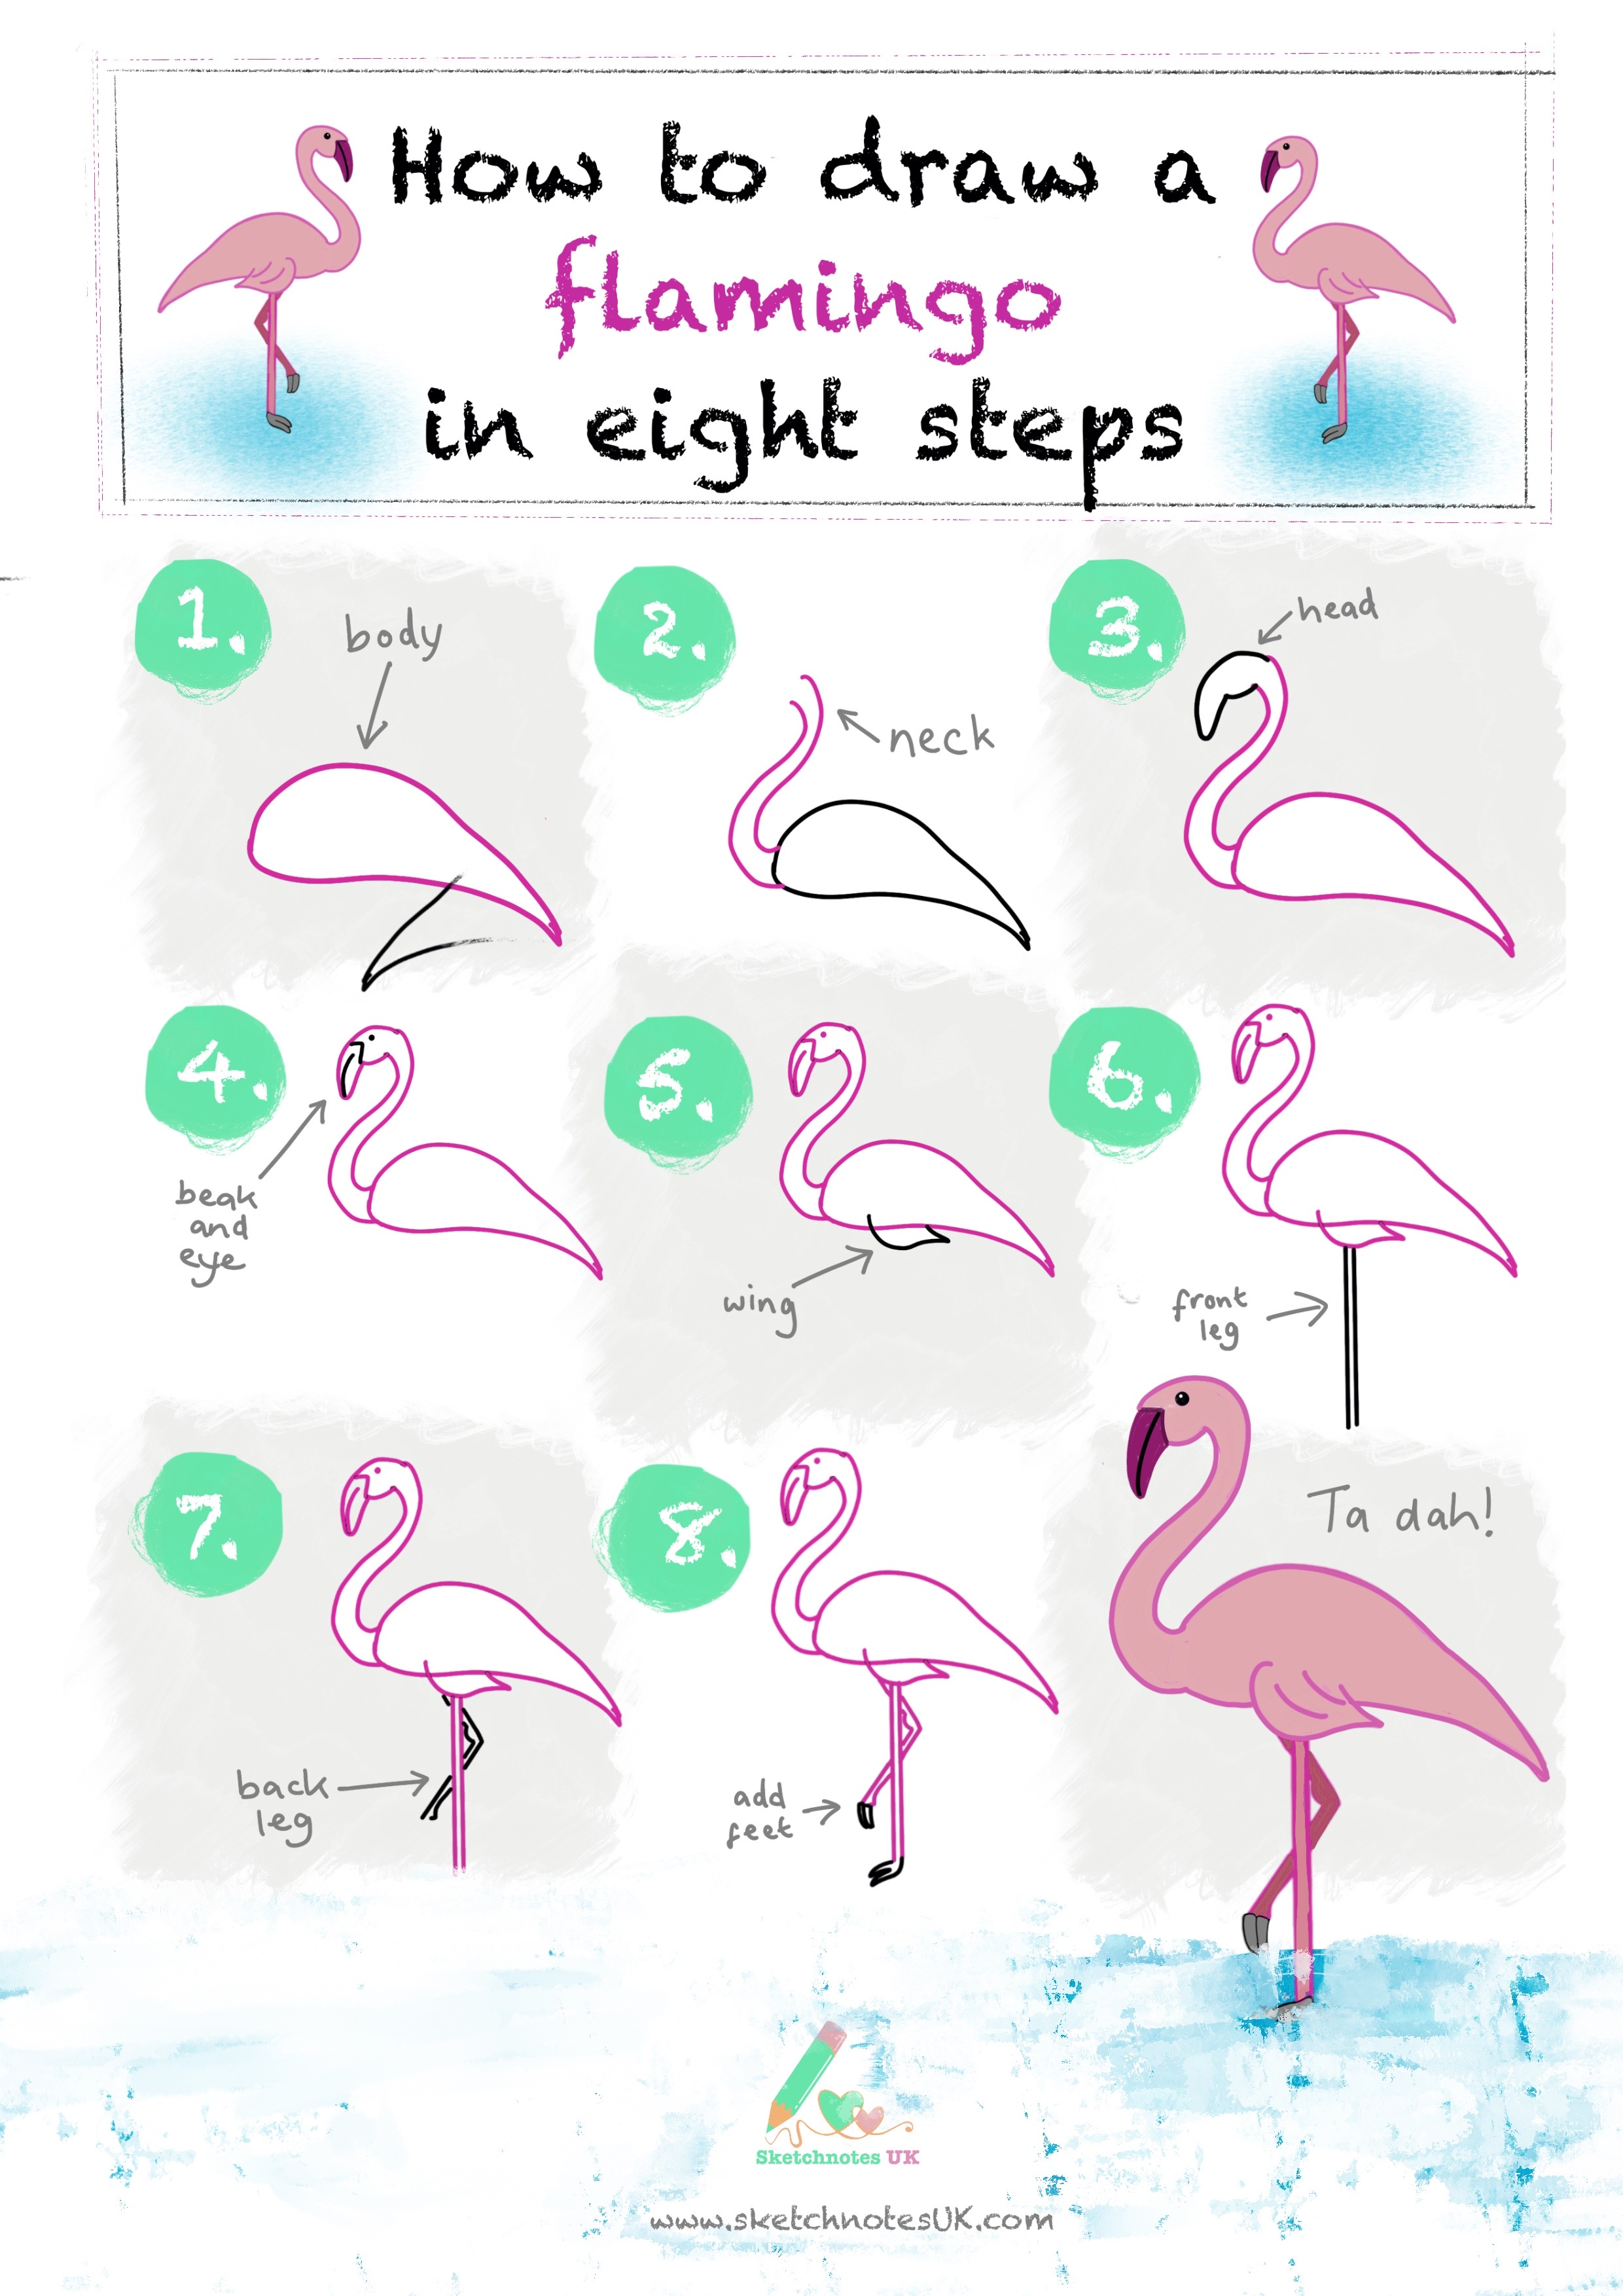 How to draw a flamingo.JPG